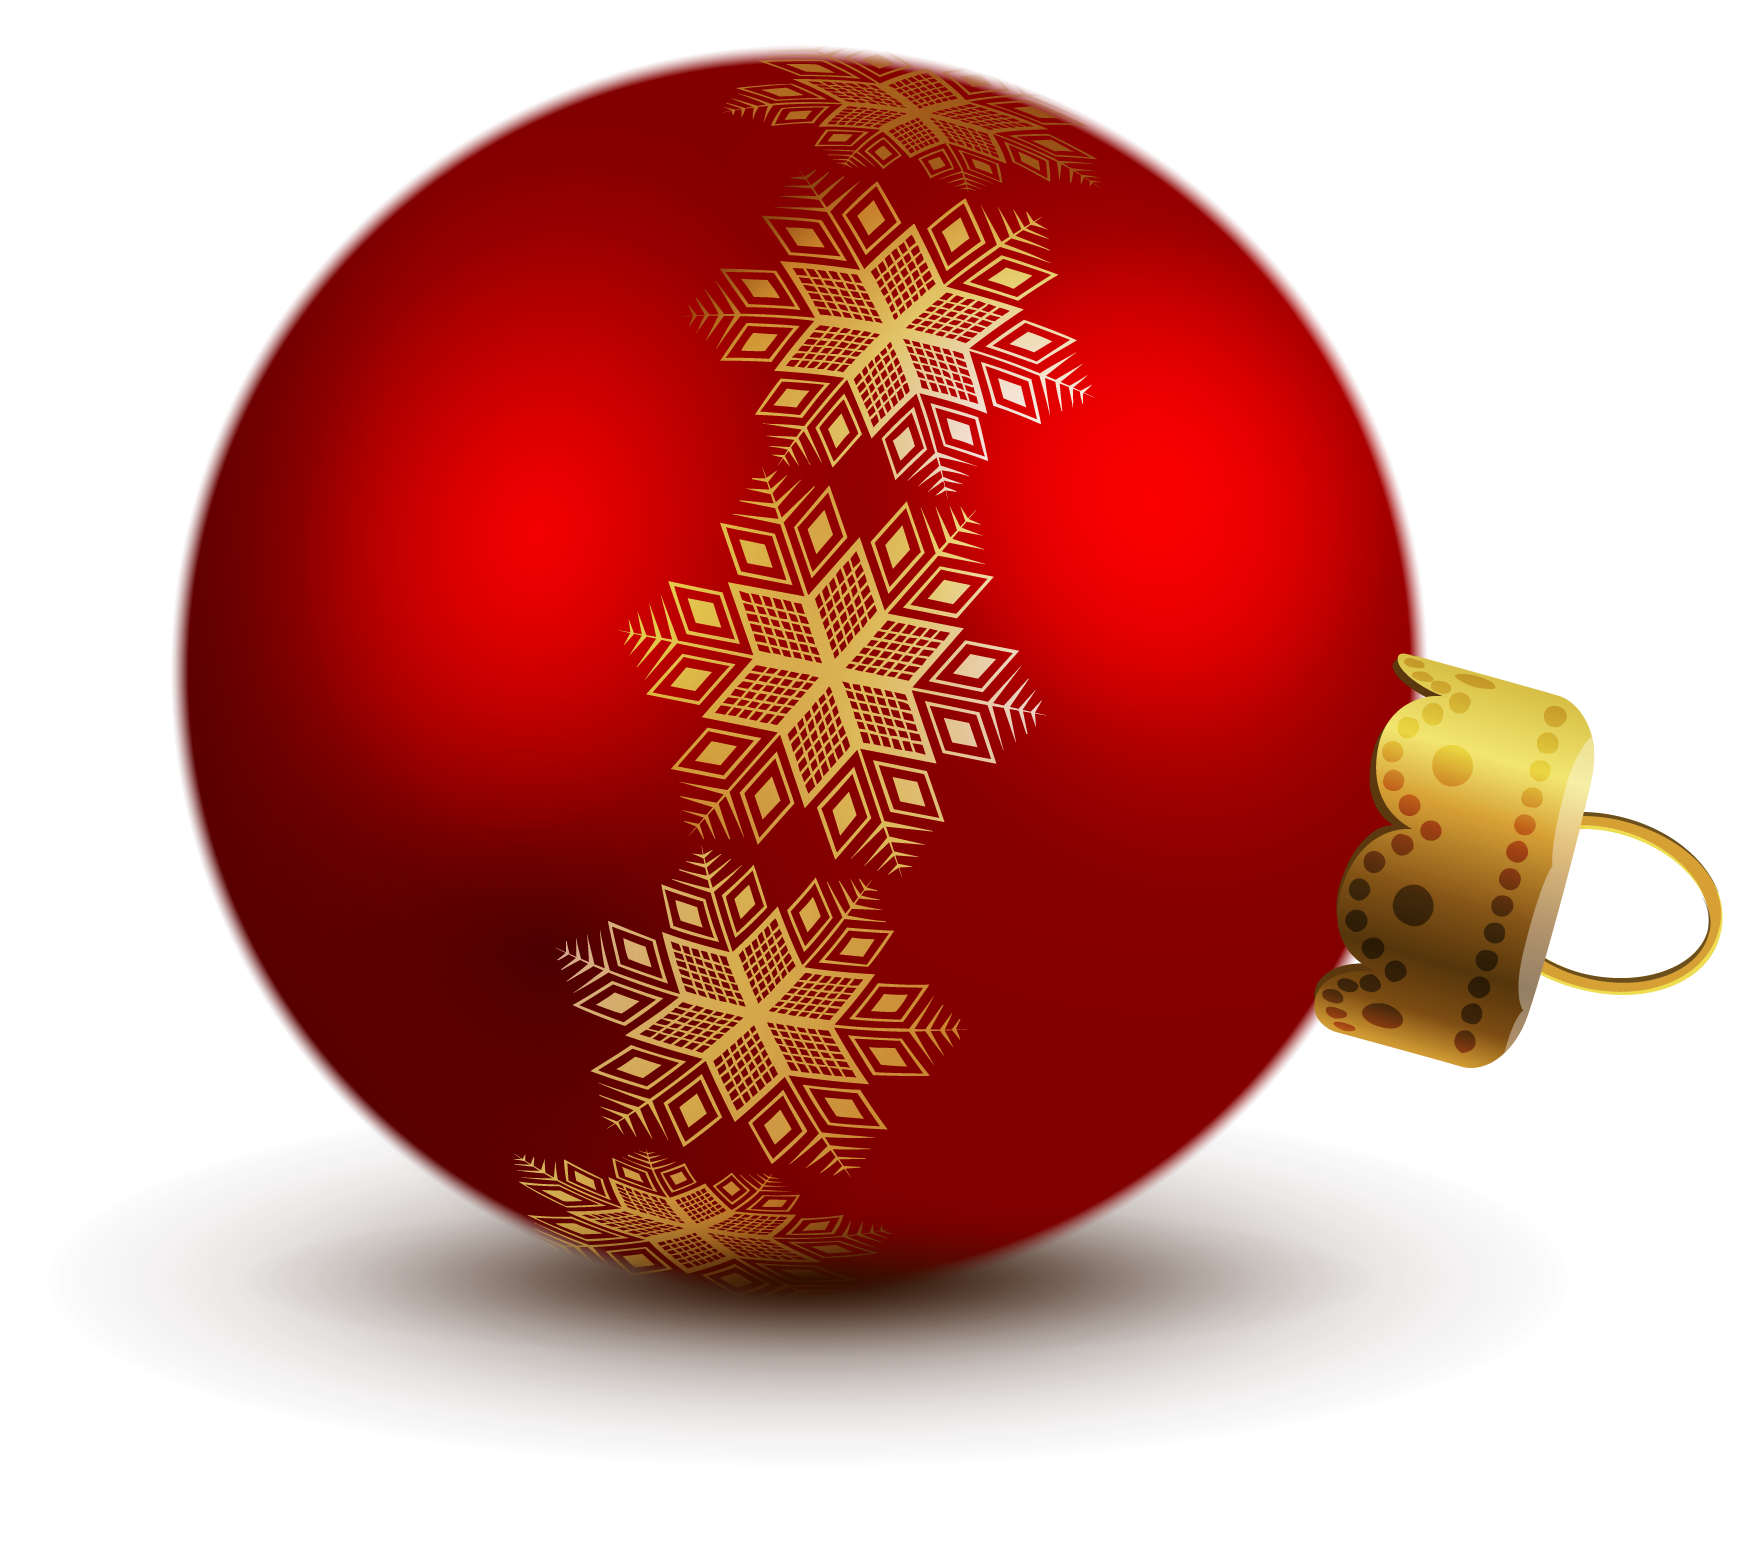 Tree ornament clipart picture free download Transparent Red Christmas Ball Ornaments Clipart | Gallery ... picture free download